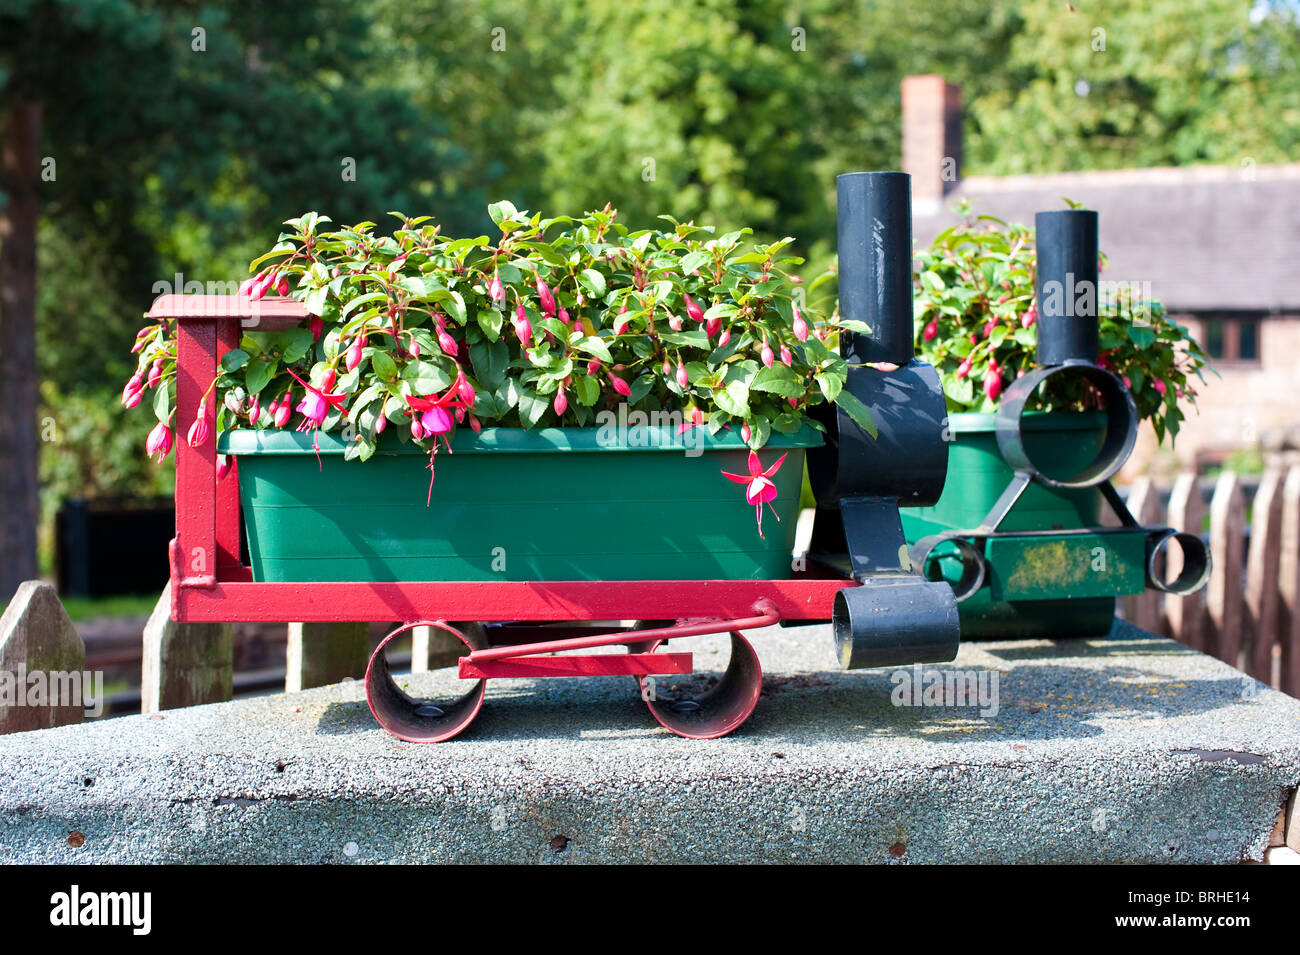 Flower baskets at Hampton Loade station near Bridgnorth, Shropshire, on the Severn Valley Railway - Stock Image